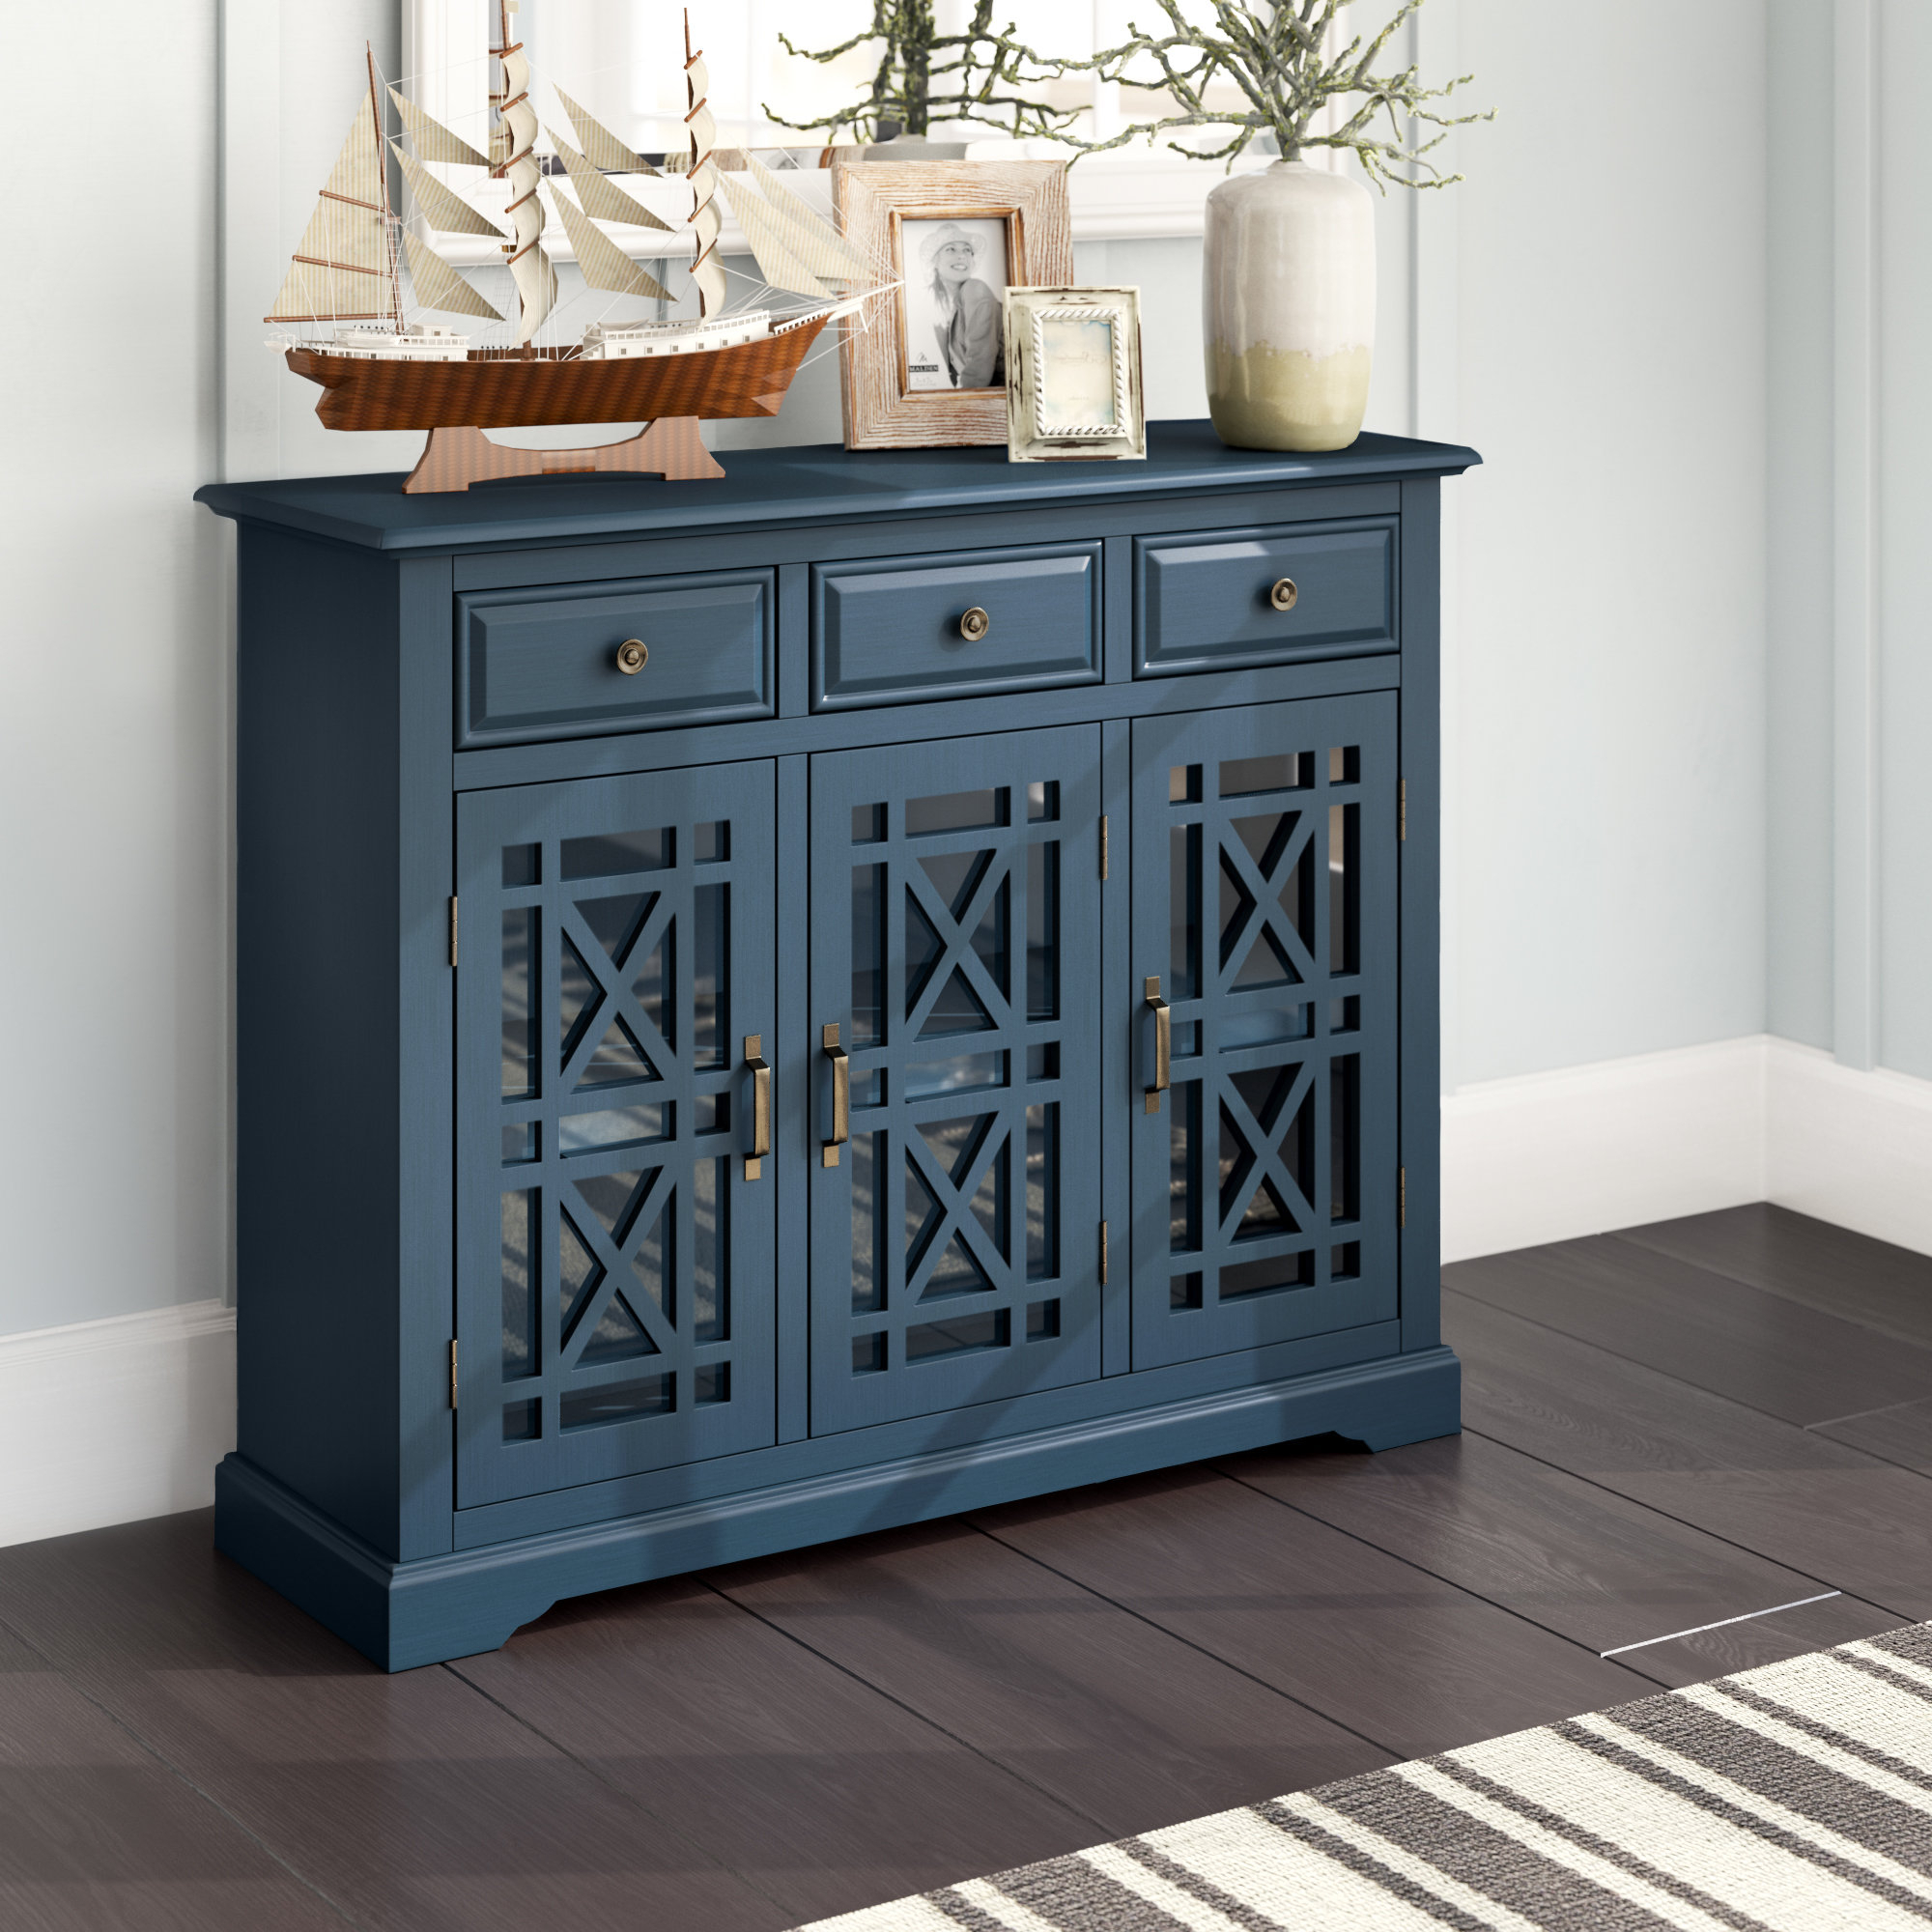 Sideboards & Buffet Tables You'll Love In 2019 | Wayfair Intended For Stillwater Sideboards (View 19 of 20)